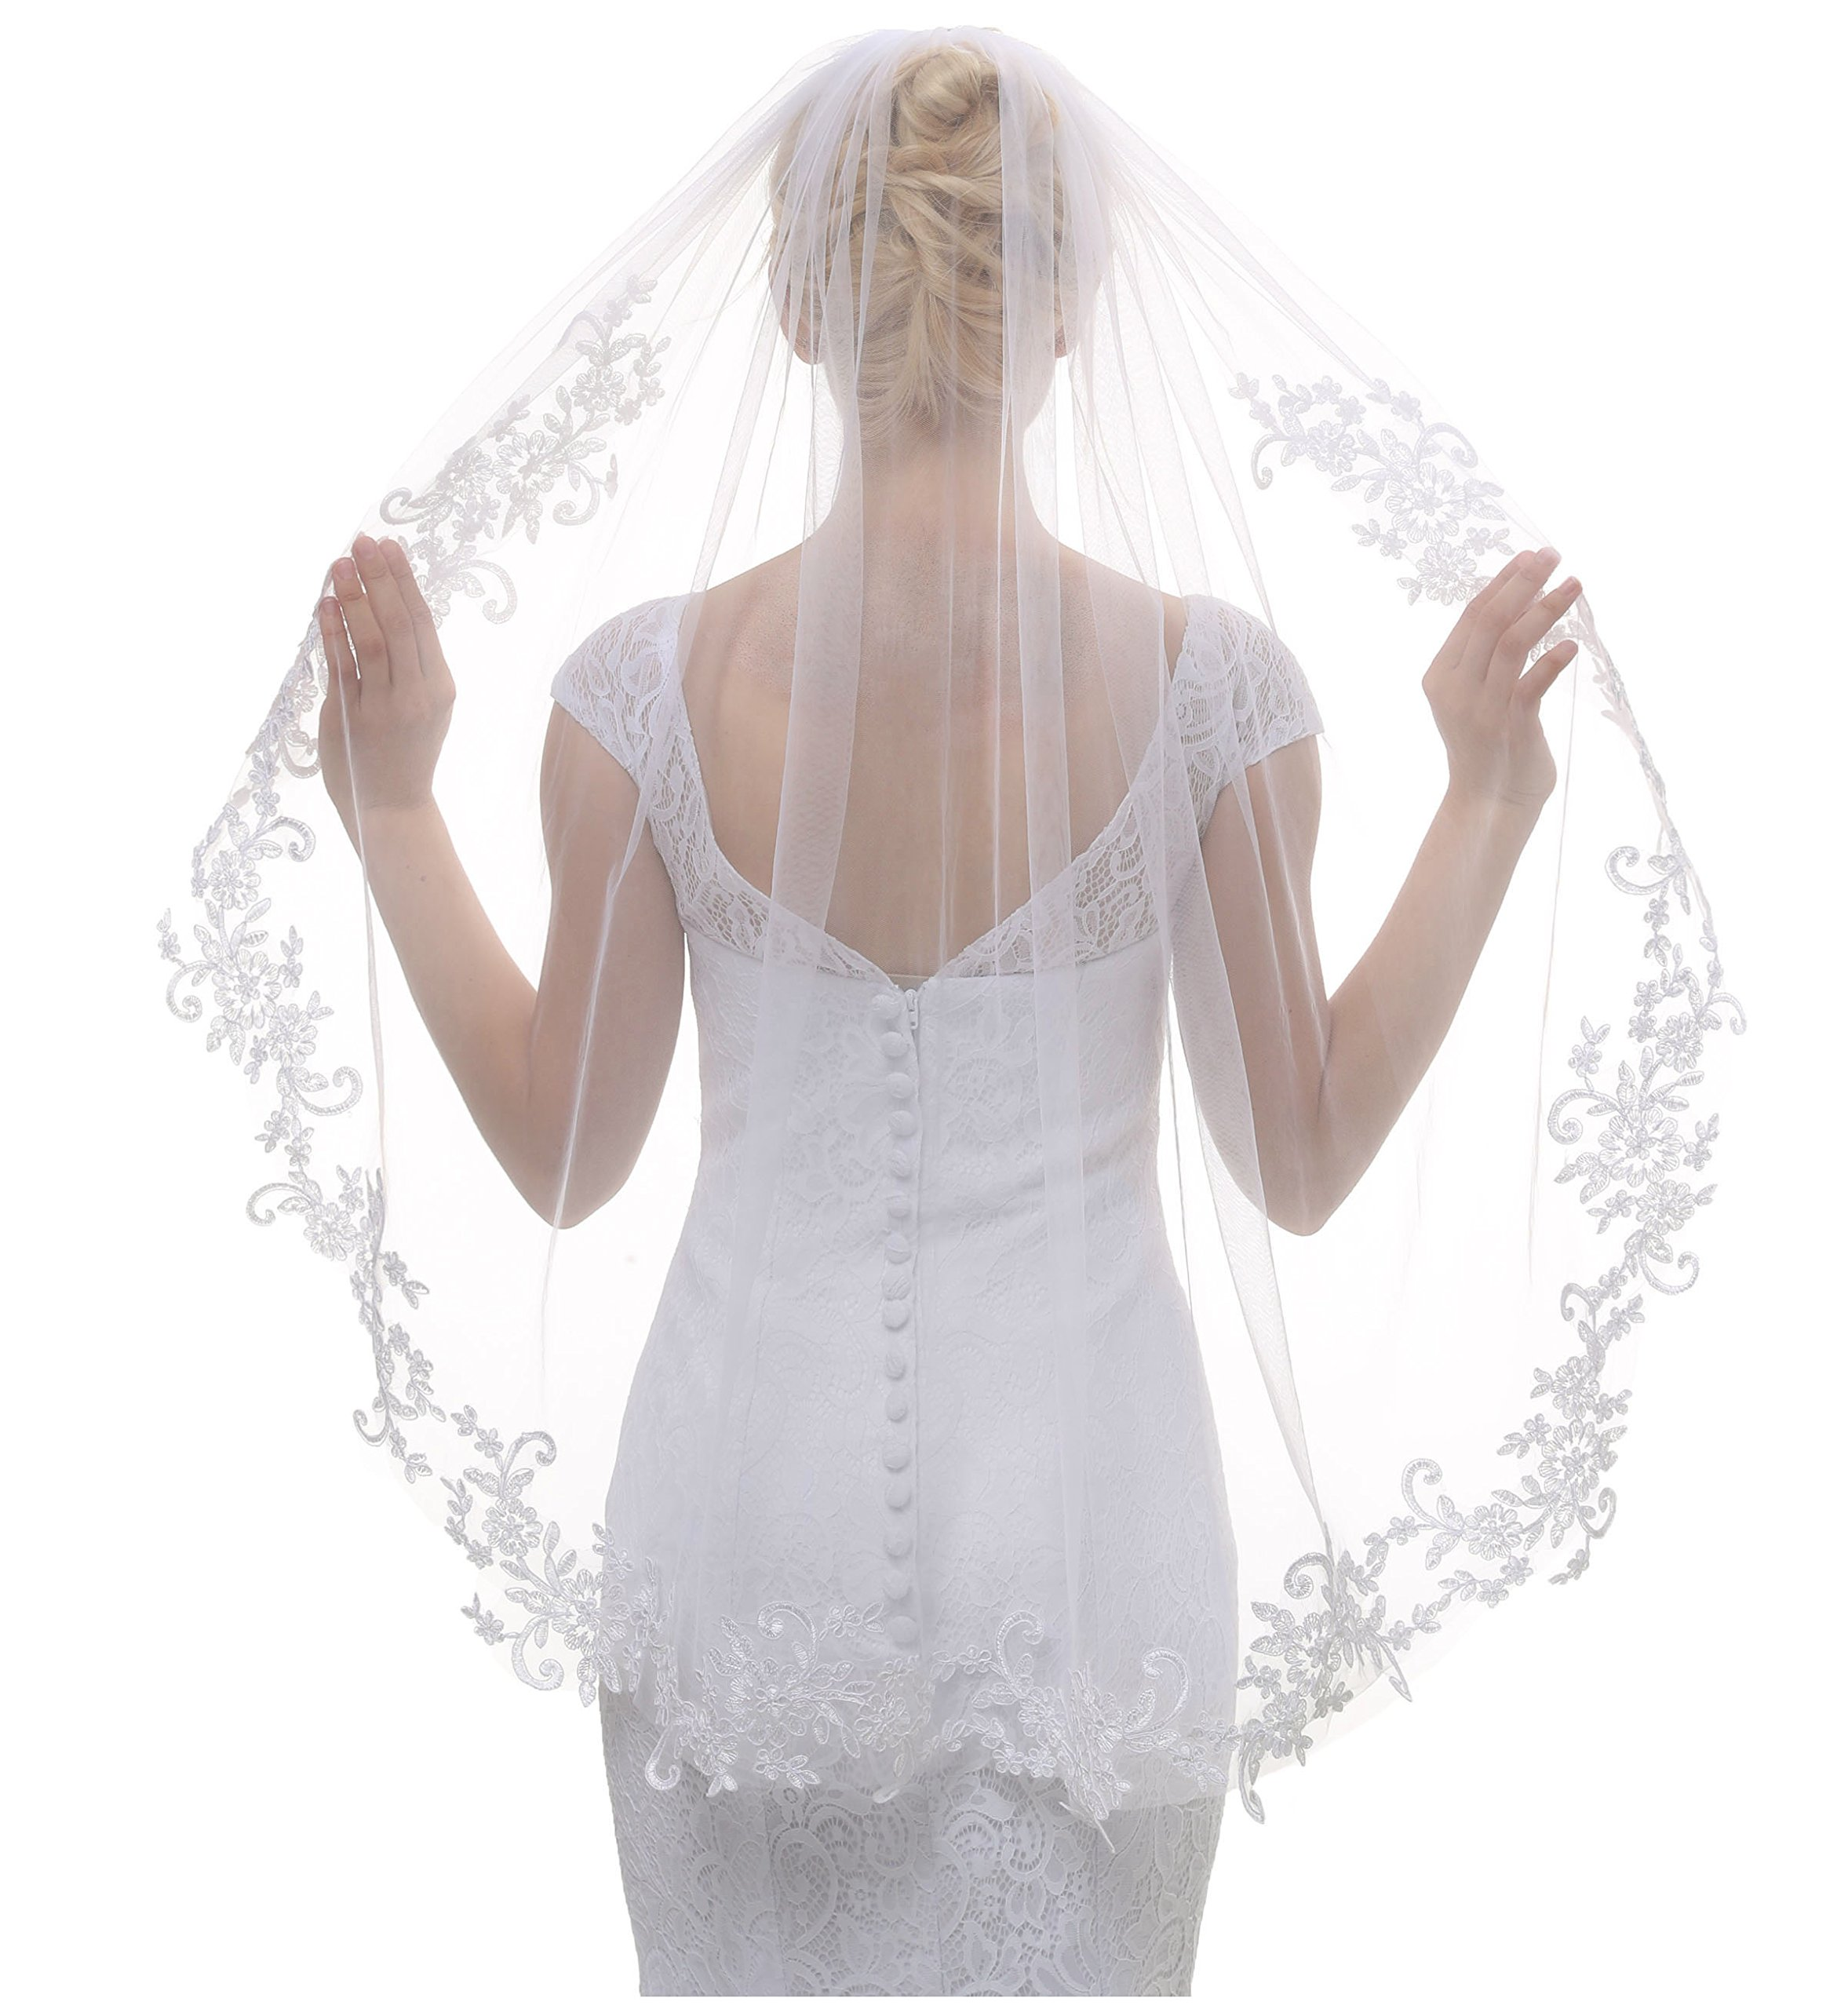 AIBIYI 1 Tier Lace Fingertip Veils for Brides with Comb ABY-V10 (Style 2 - Ivory, Free)